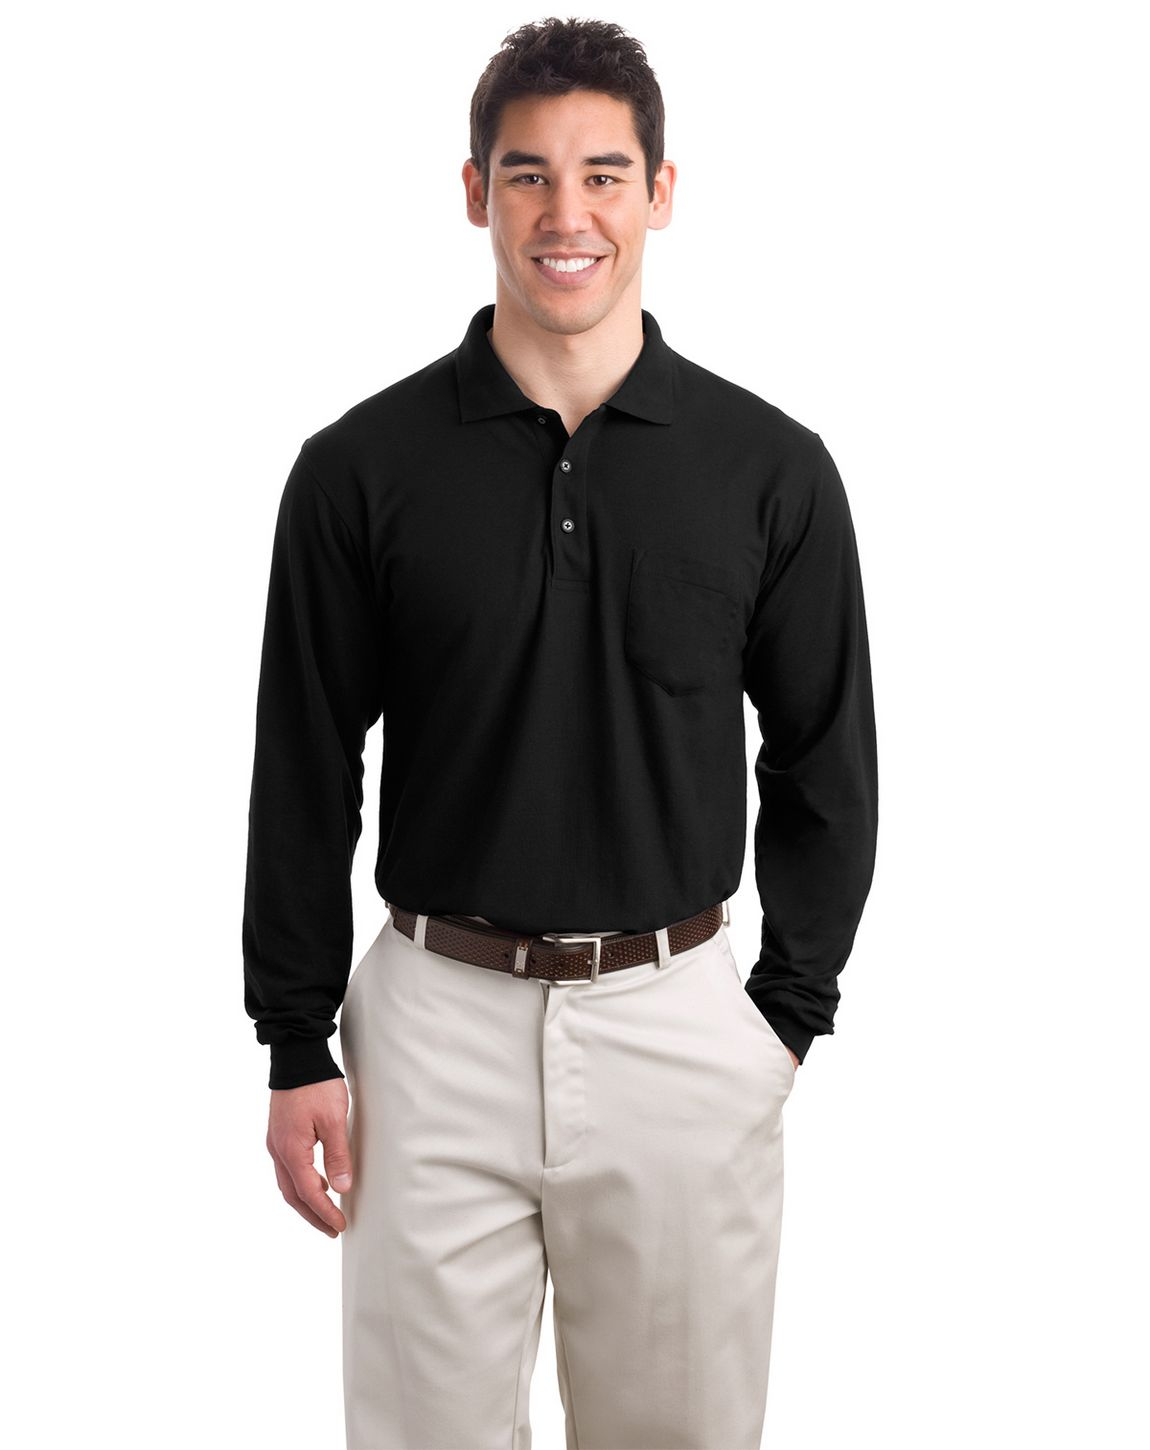 Port Authority K500LSP Men's Long Sleeve Silk Touch Polo with Pocket - Black - XS #silk